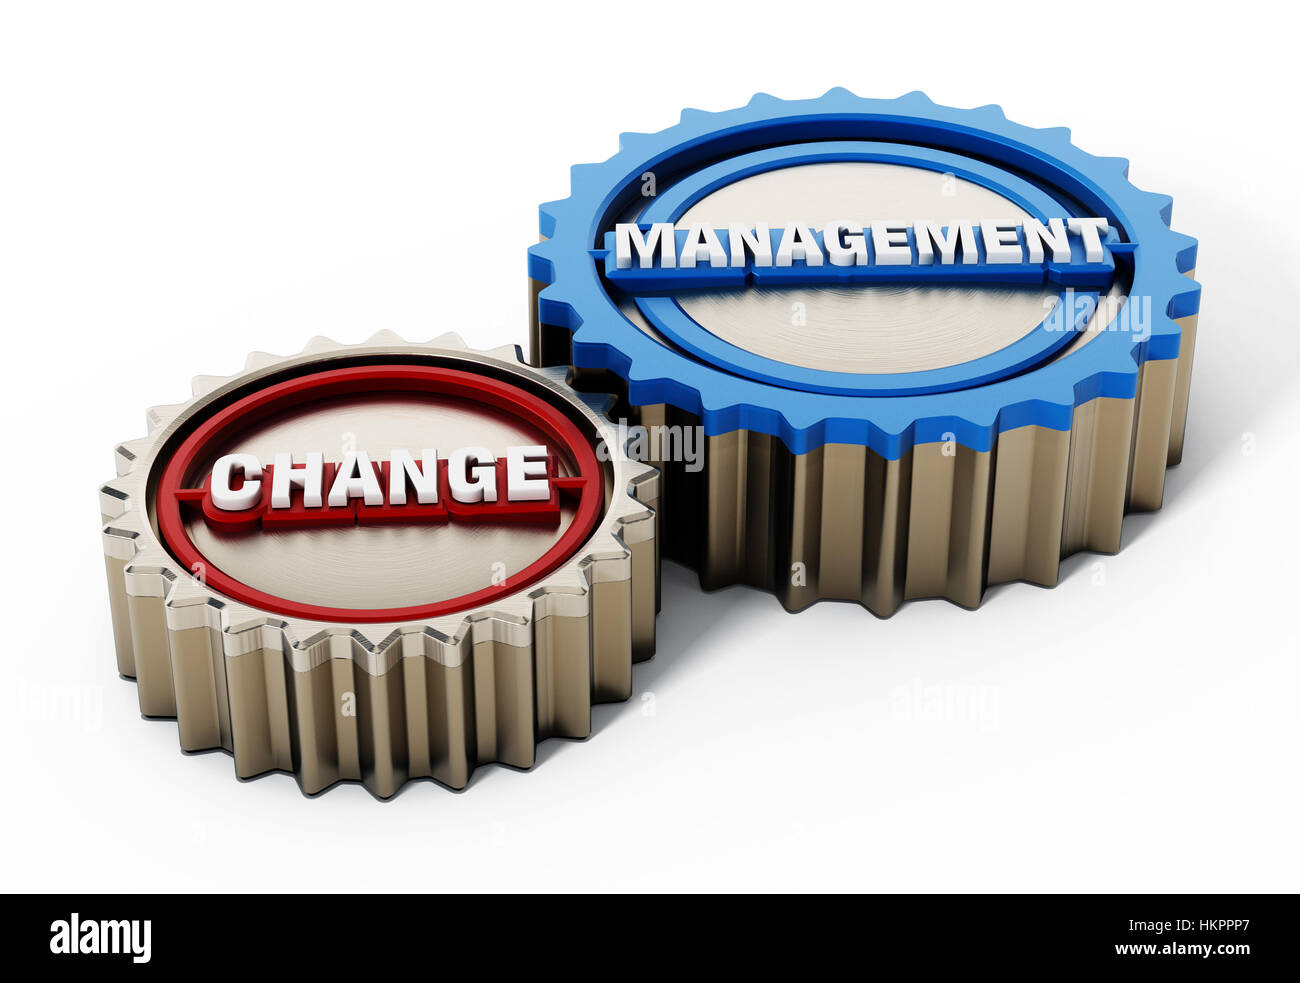 Change management gears isolated on white background. 3D illustration. - Stock Image